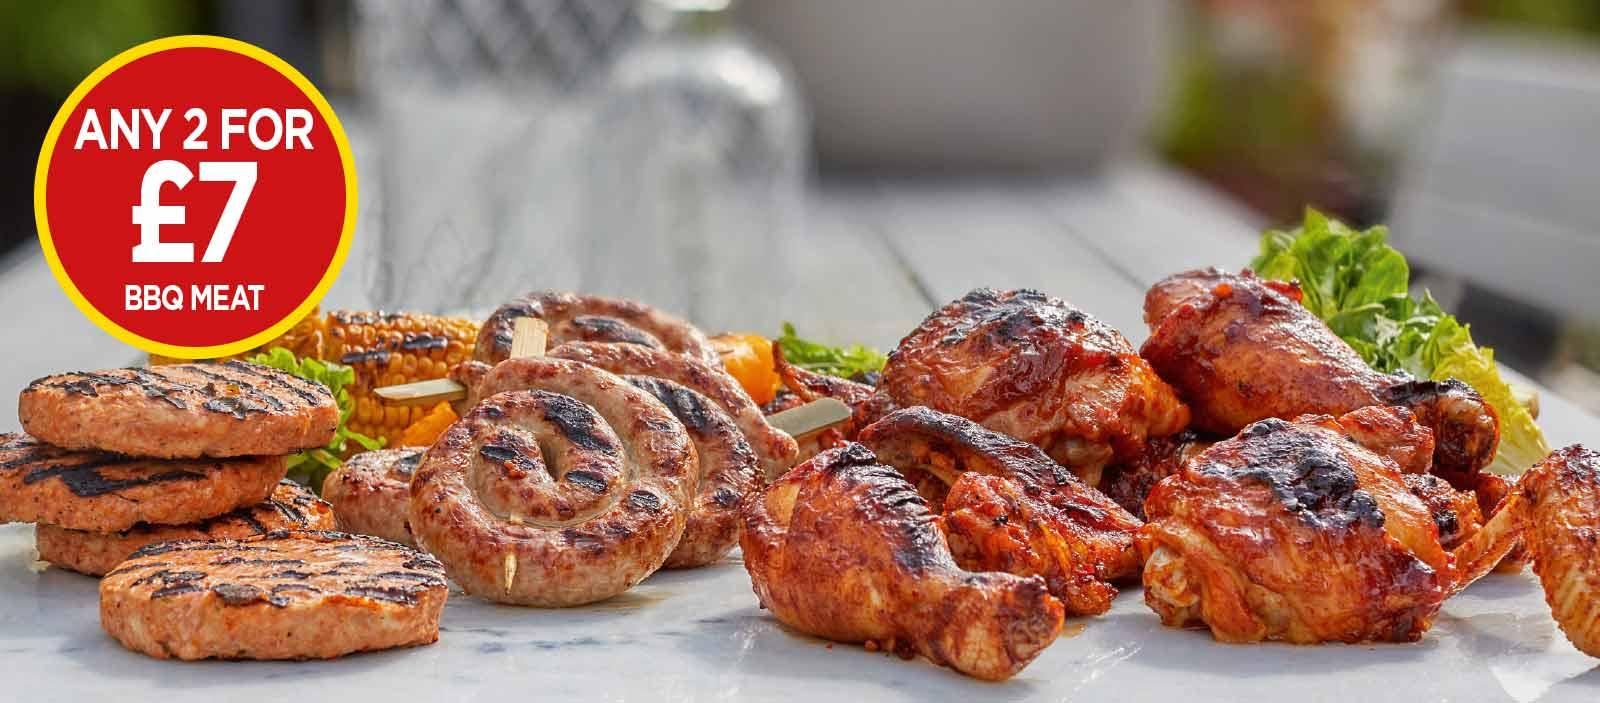 Discover The Choice BBQ Drumsticks, Discover The Choice Smoky BBQ Beef Sliders, Mawgan Bay Big BBQ Tiger Prawn Skewers - Any 2 for £7 at Budgens